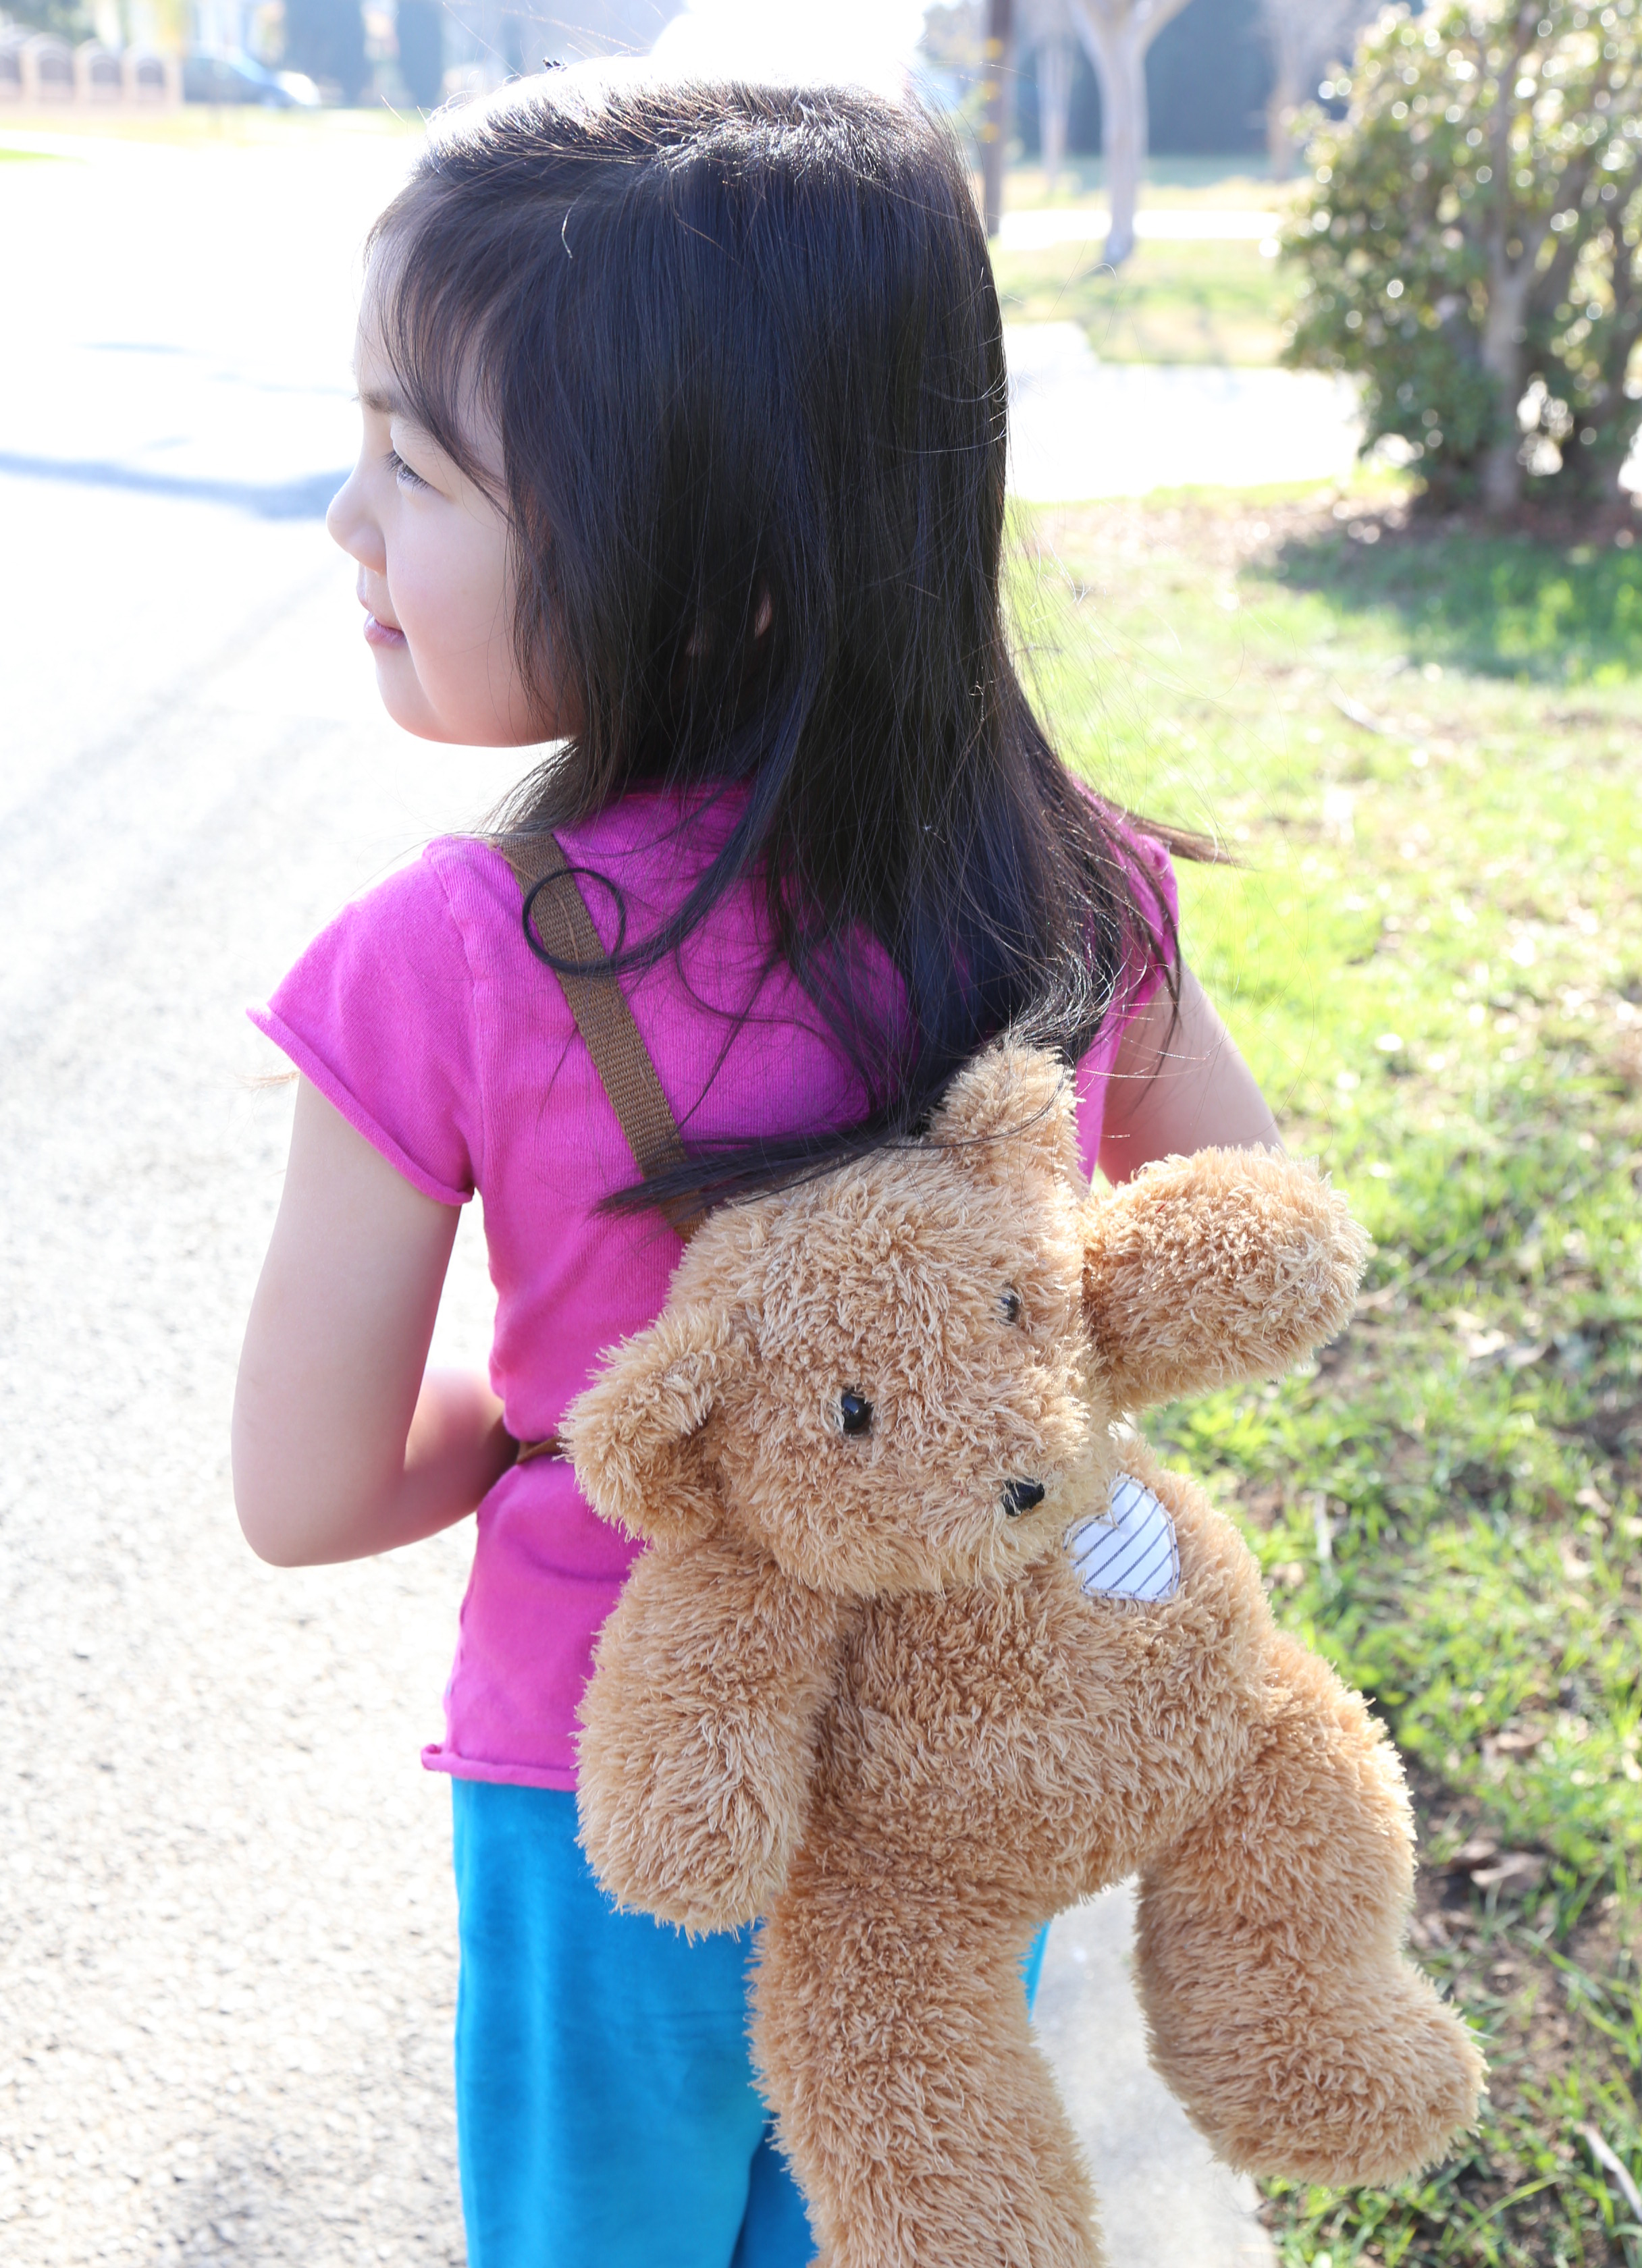 To make it easier for children to bring Beary along on their adventures, I also designed and created matching straps that allows Beary to be worn as a backpack.